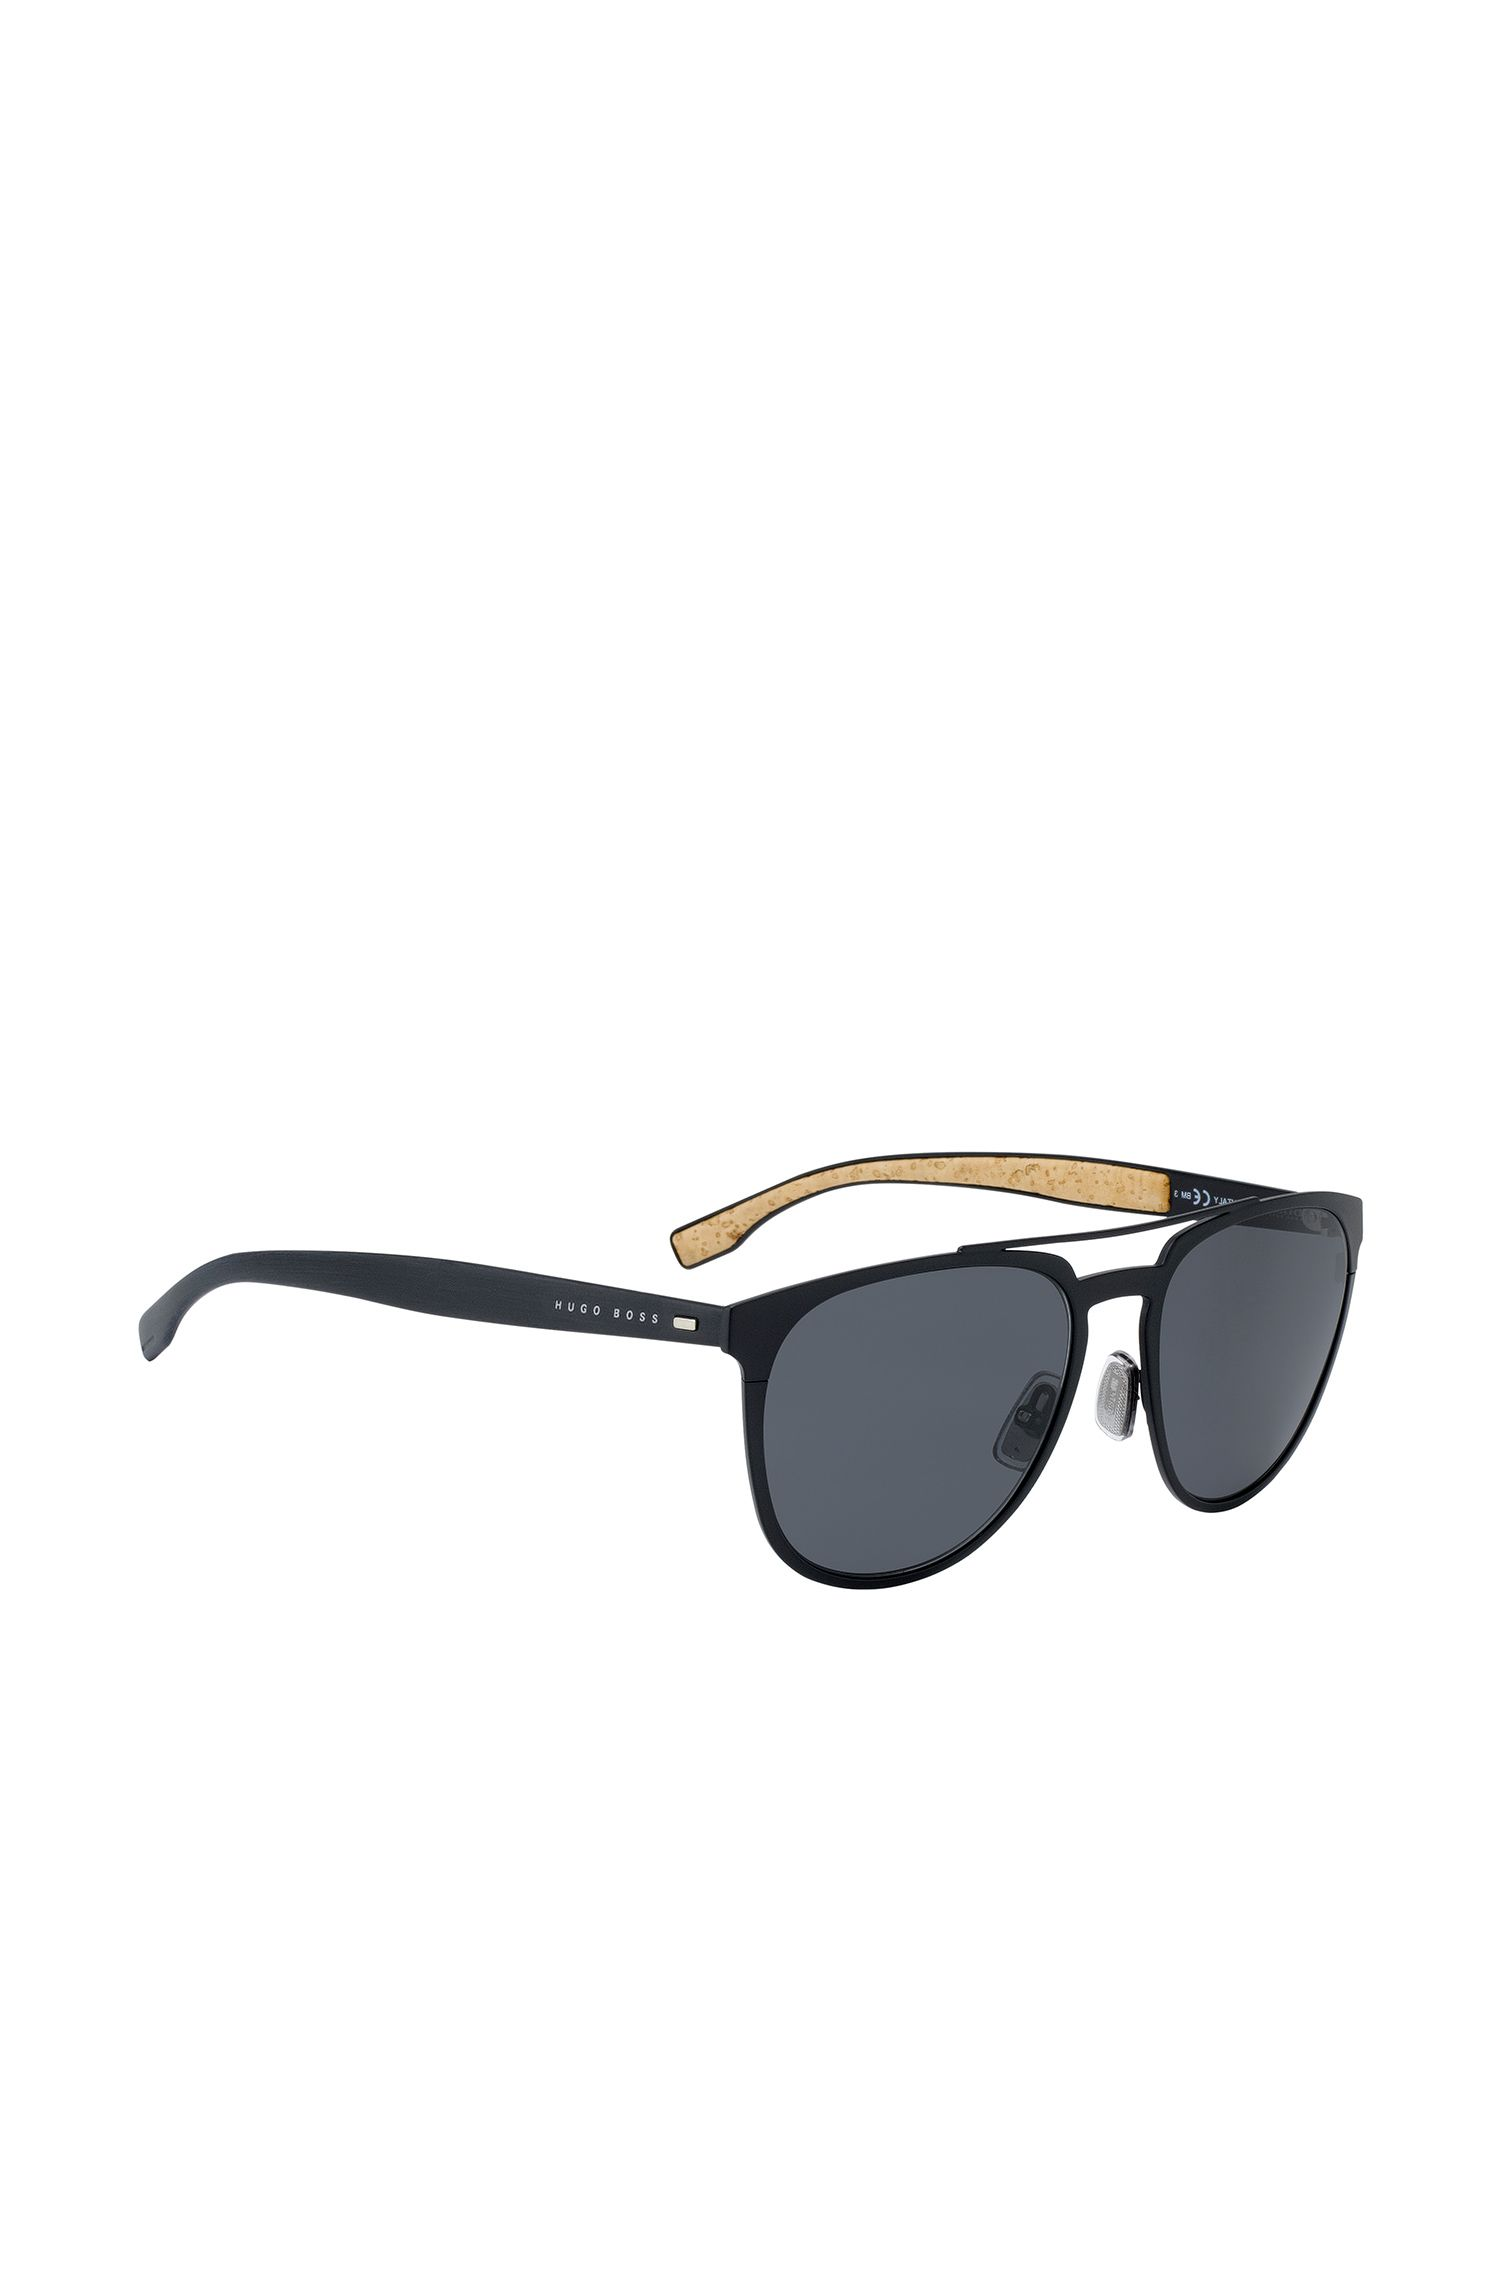 Dark Grey Metal Round Sunglasses | BOSS 0882S